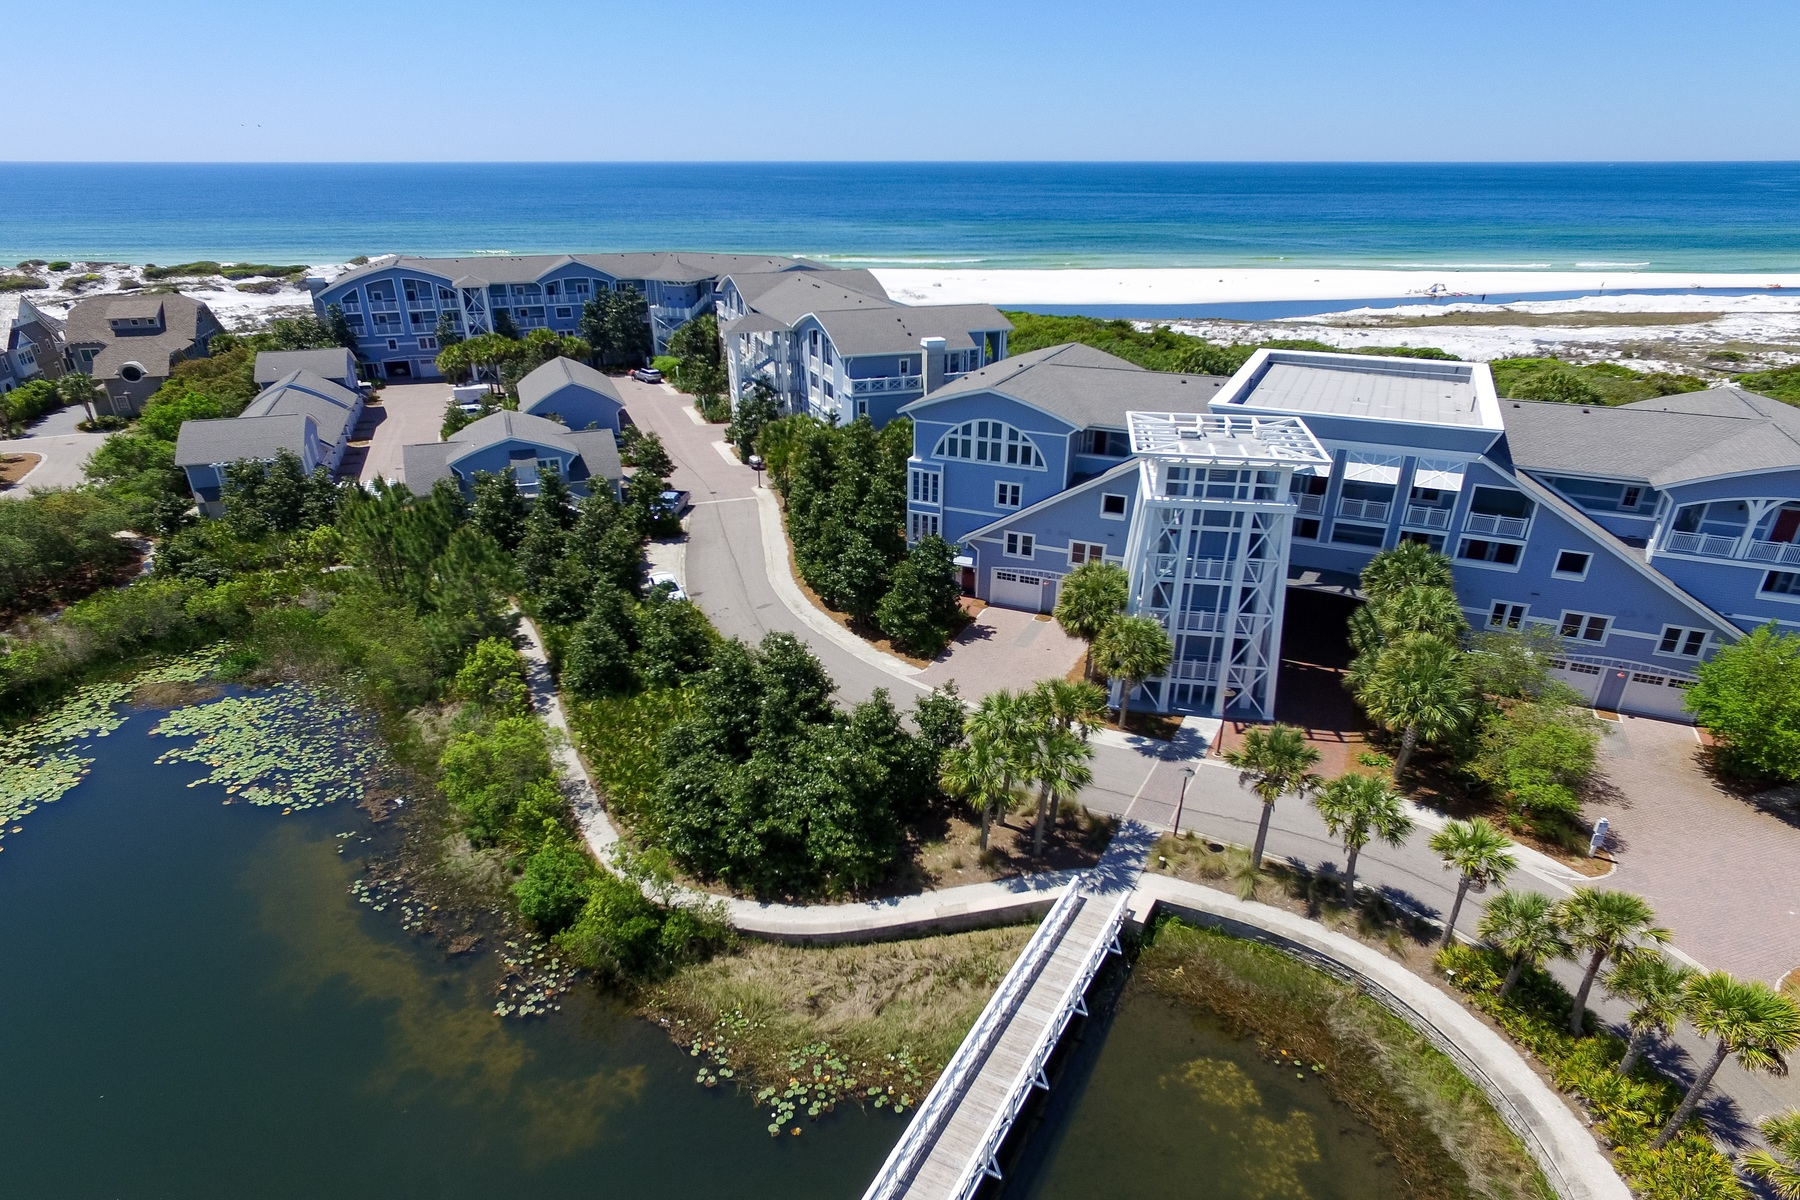 Copropriété pour l Vente à TOP FLOOR RETREAT CAPTURING STUNNING VIEWS OF GULF AND BEACH 100 S Bridge Lane C427 Watersound, Florida, 32461 États-Unis